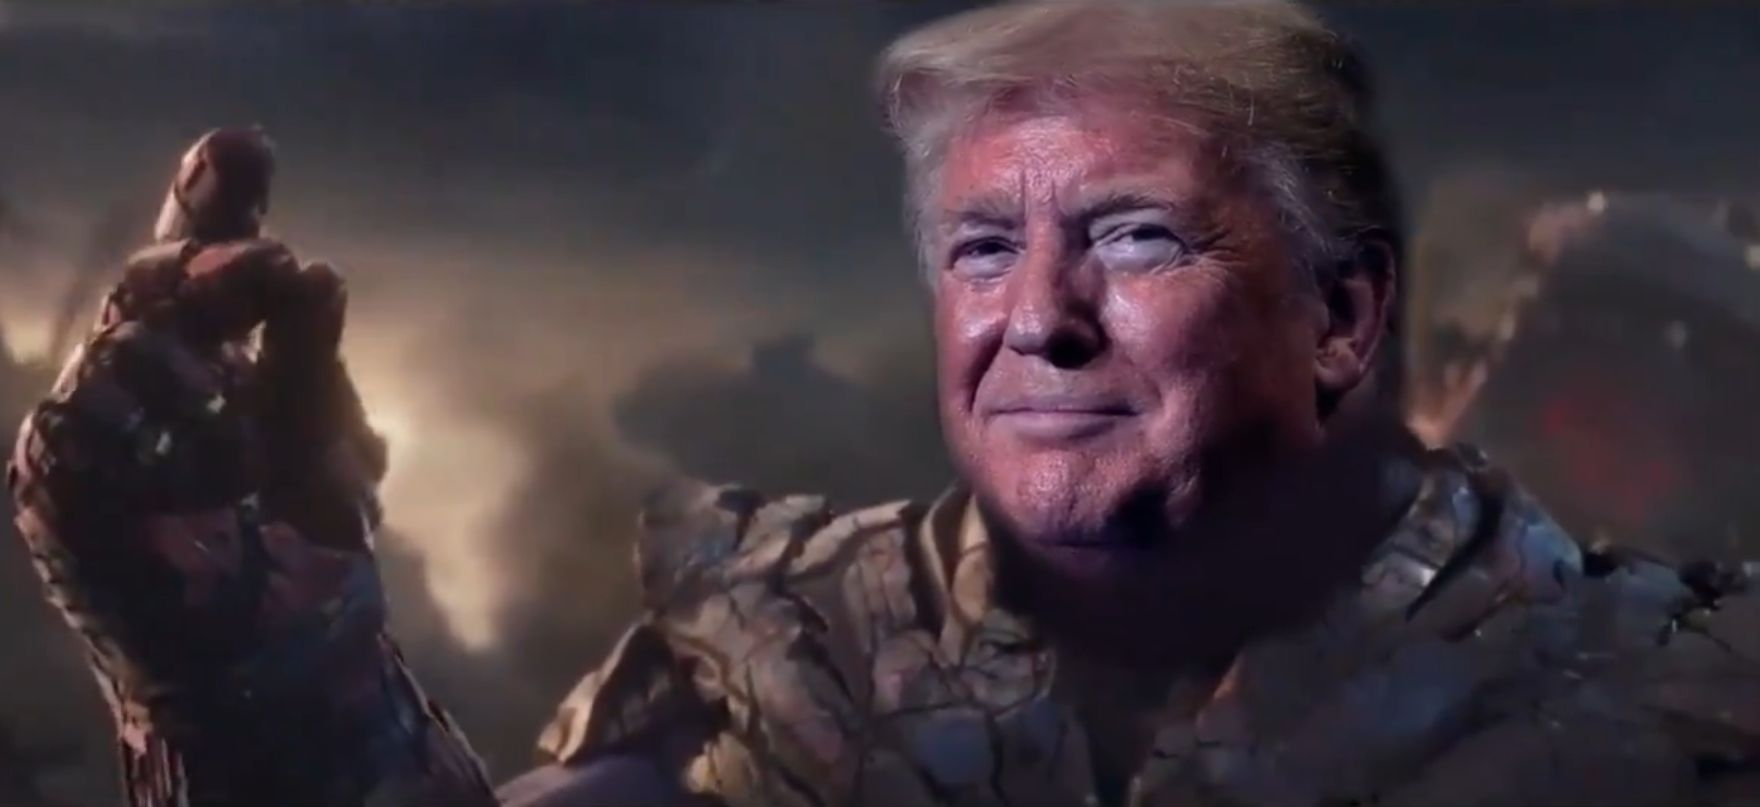 Trump Re-election Official Campaign Video Has Trump as Thanos Killing All the Democrats - of Half the Life In The Universe